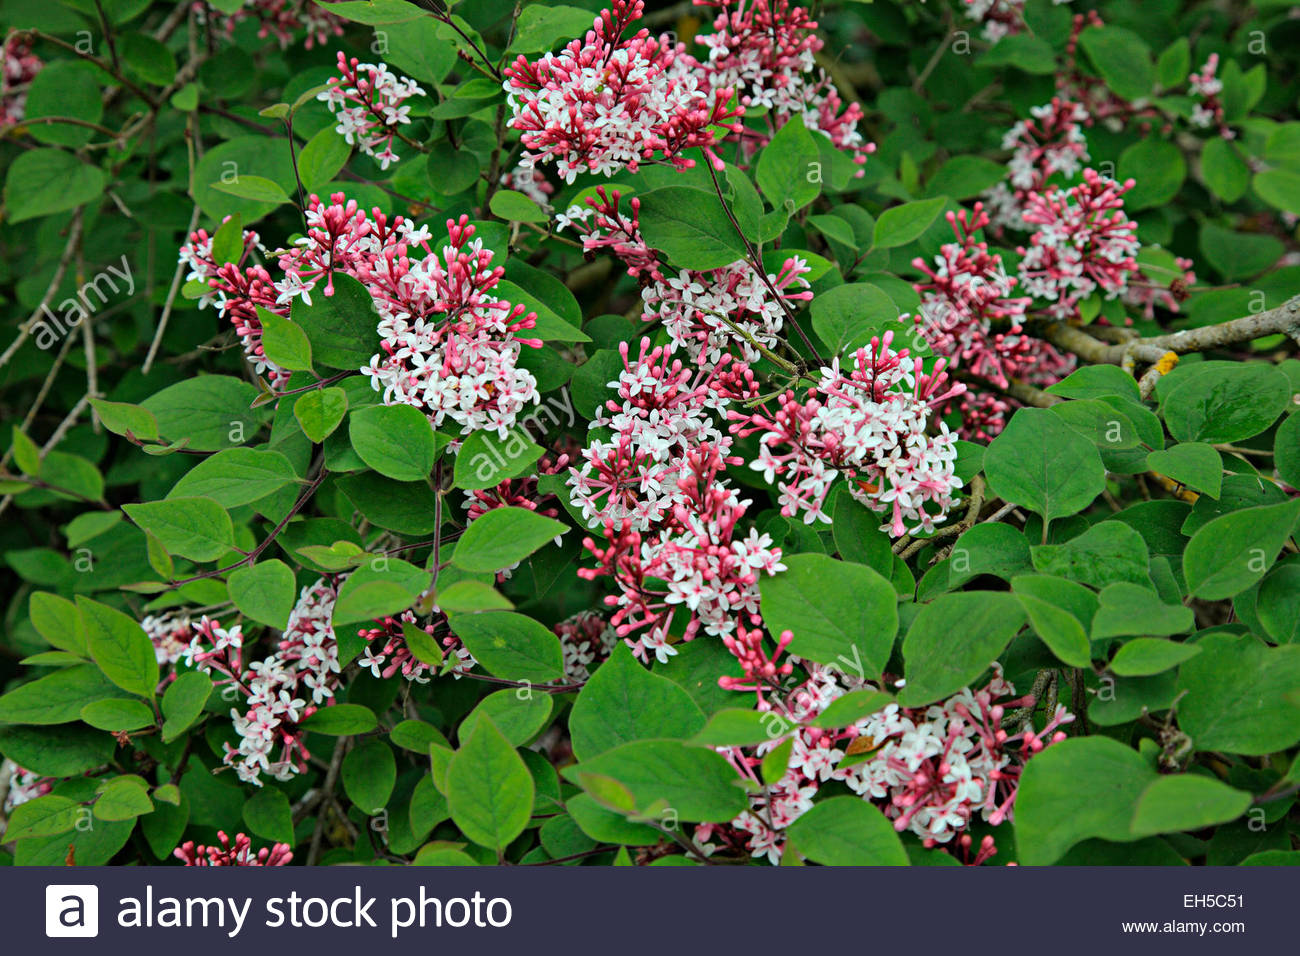 syringa pubescens subsp microphylla 39 superba 39 agm stock photo royalty free image 79409933 alamy. Black Bedroom Furniture Sets. Home Design Ideas